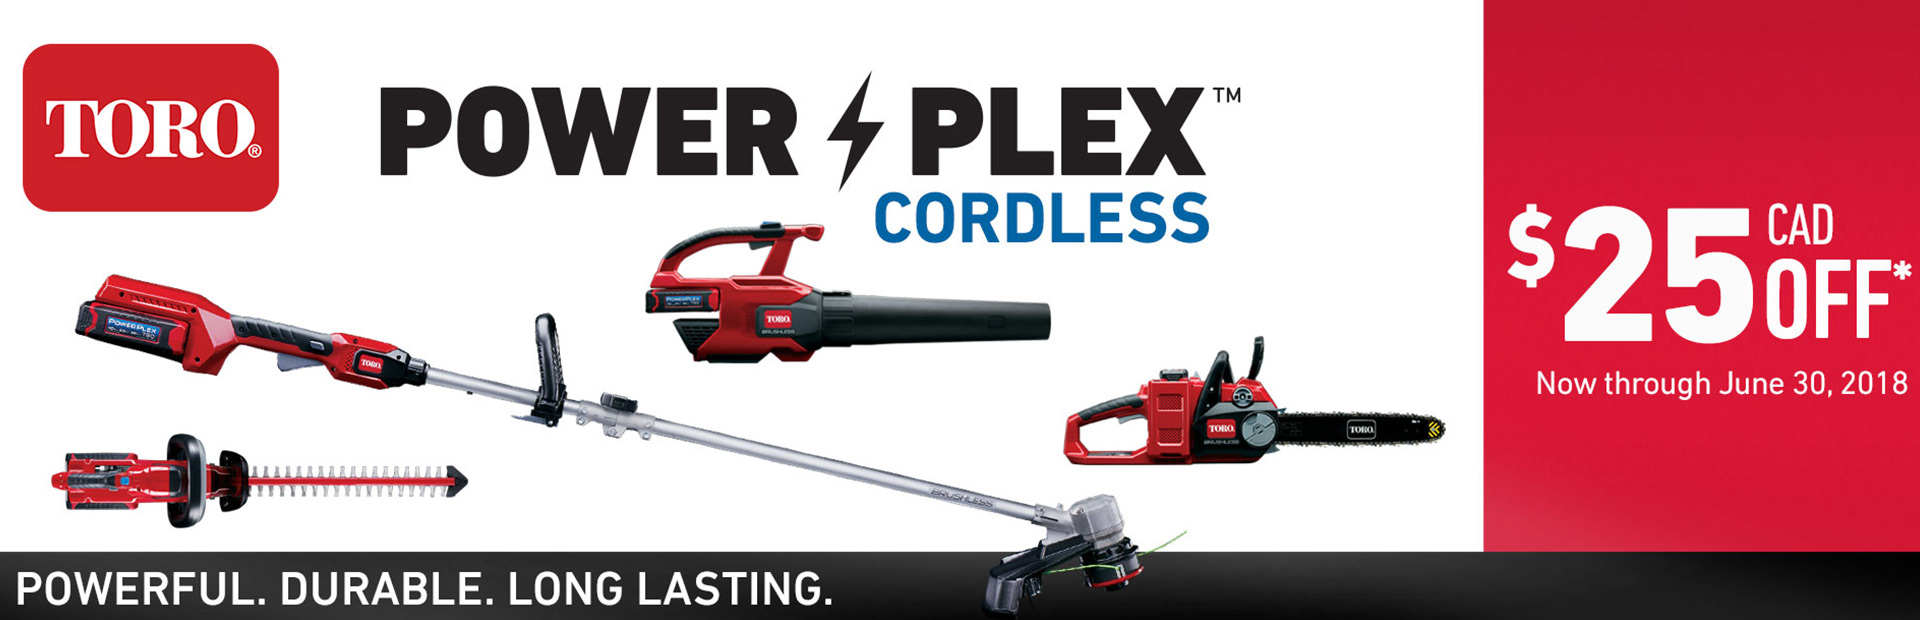 Toro: Up To $25 CAD OFF Select PowerPlex Tools